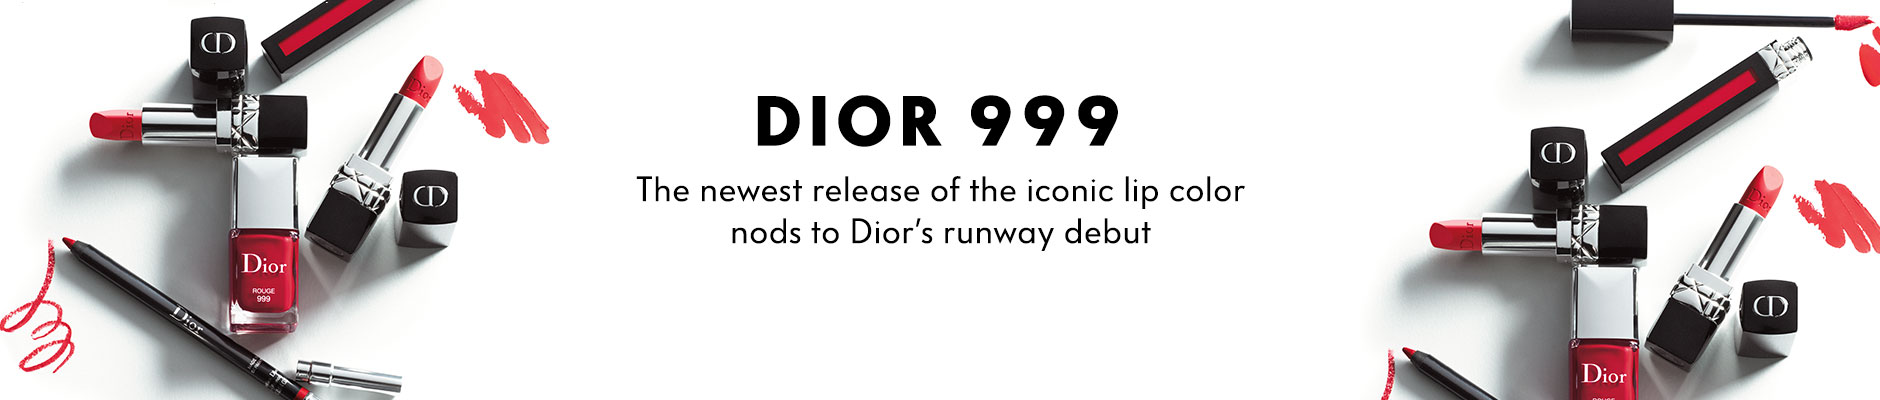 Dior 999, the newest release of the iconic lip color nods to Dior's runway debut, shop now